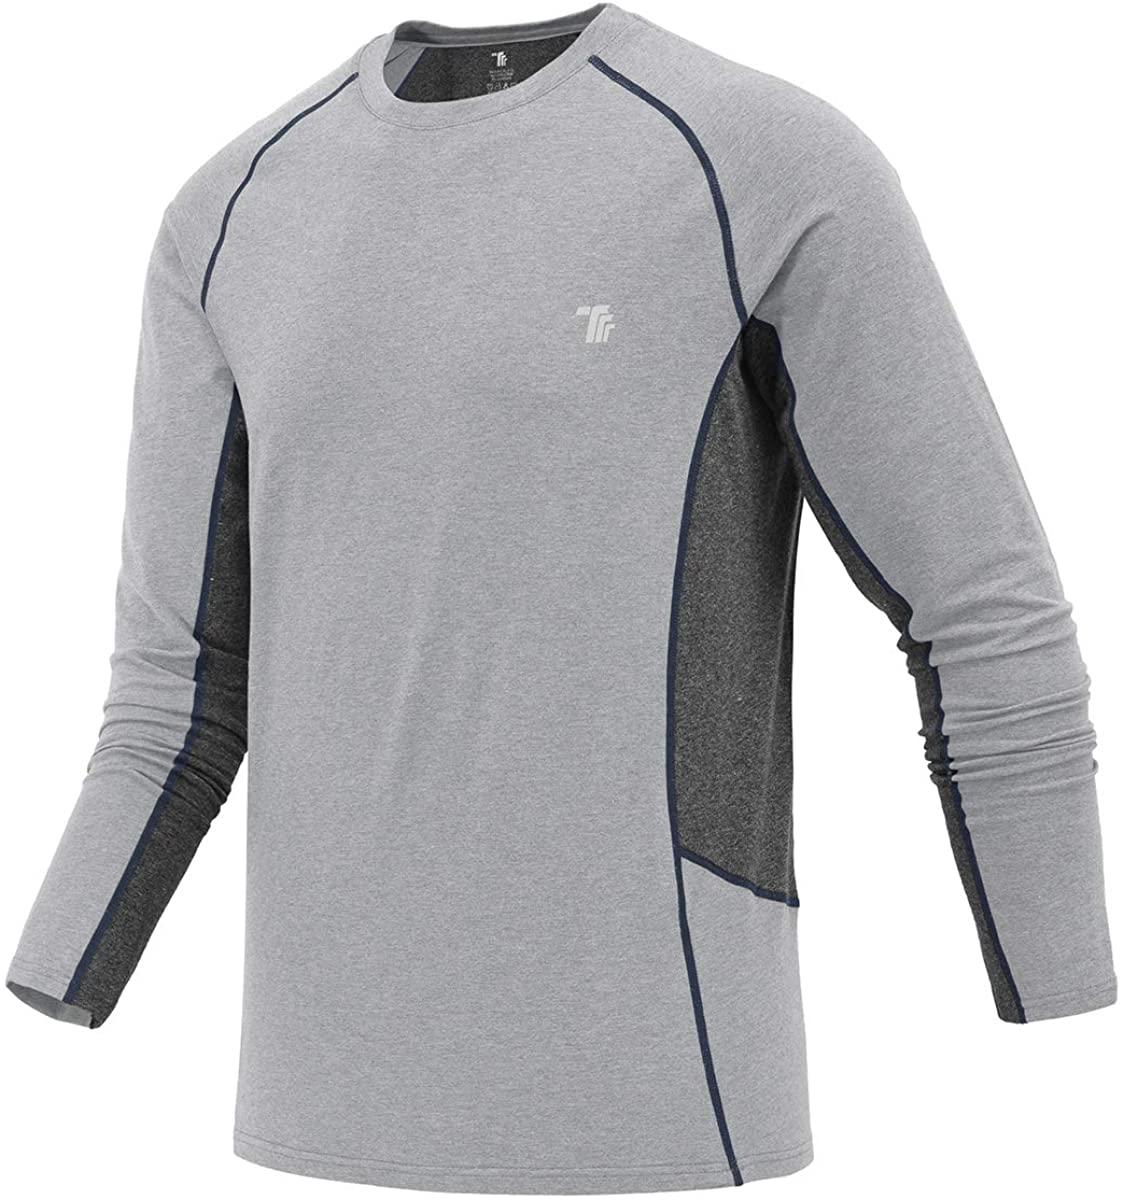 YSENTO Men's Outdoor Sports Long Sleeve Dry Performance Training Workout Shirts